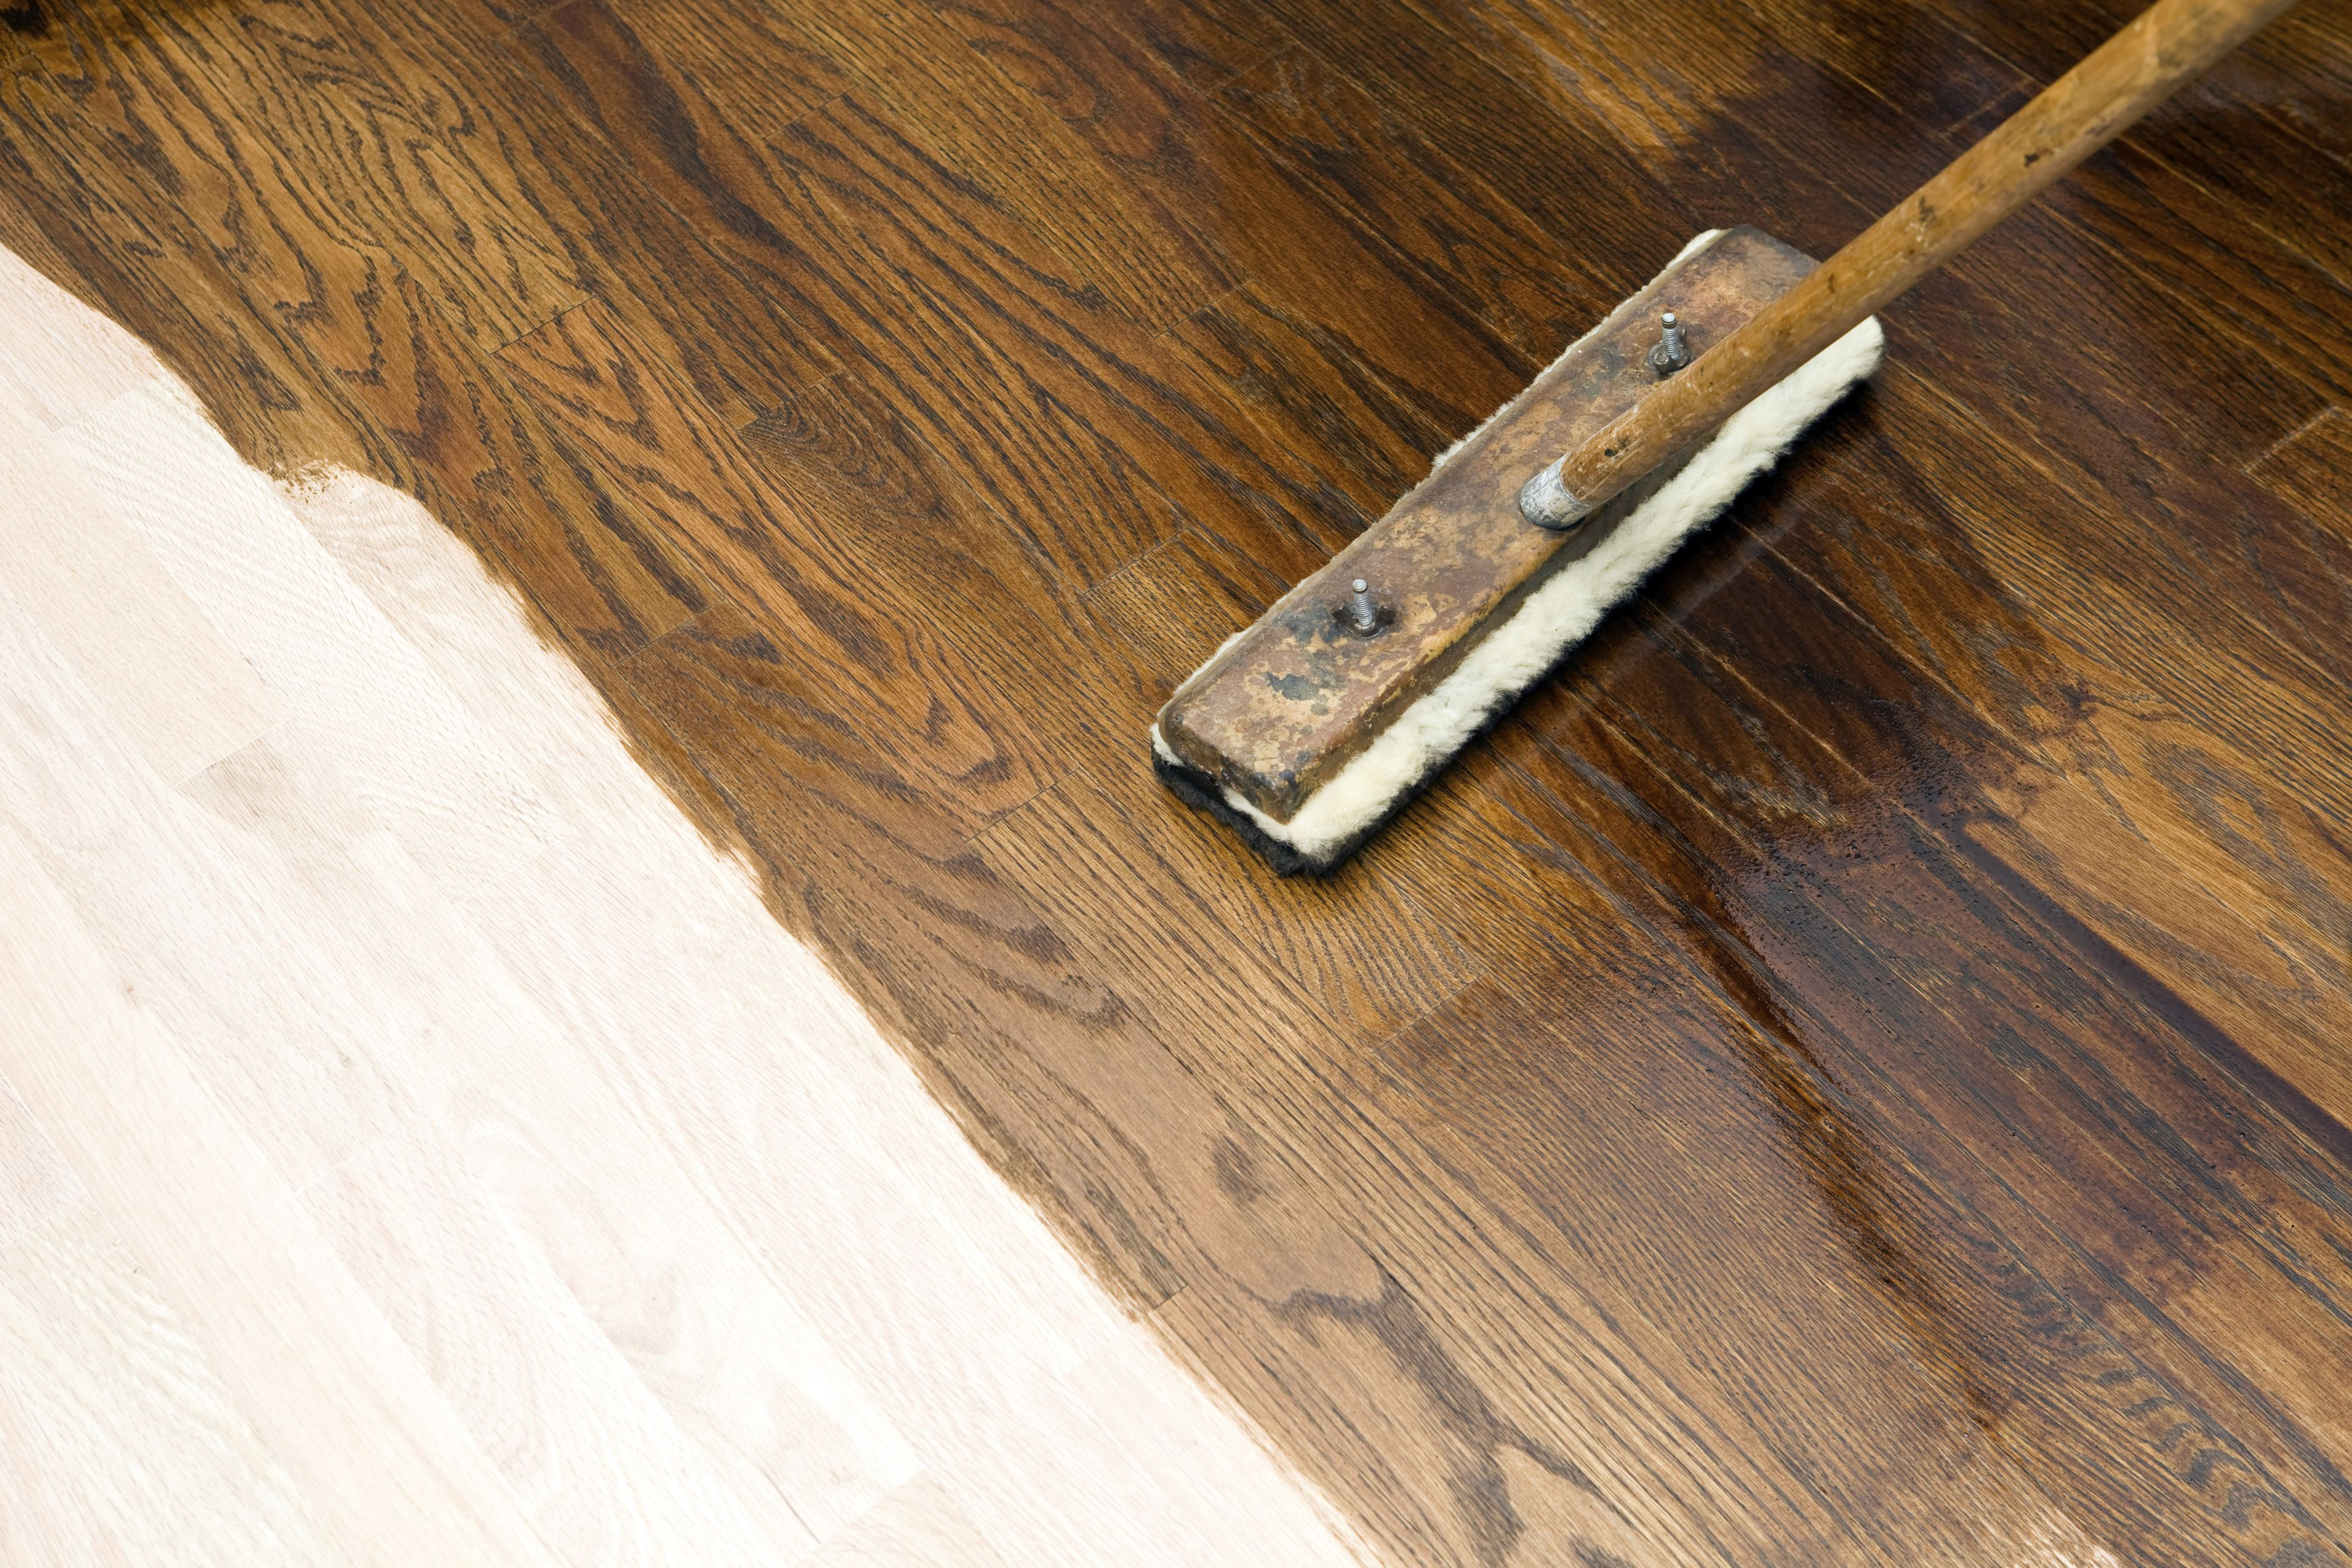 cost of laminate flooring vs hardwood of how to build equity what it means to own more of your home with regard to dark stain application on new oak hardwood floor 184881406 573e139f5f9b58723d7a472d